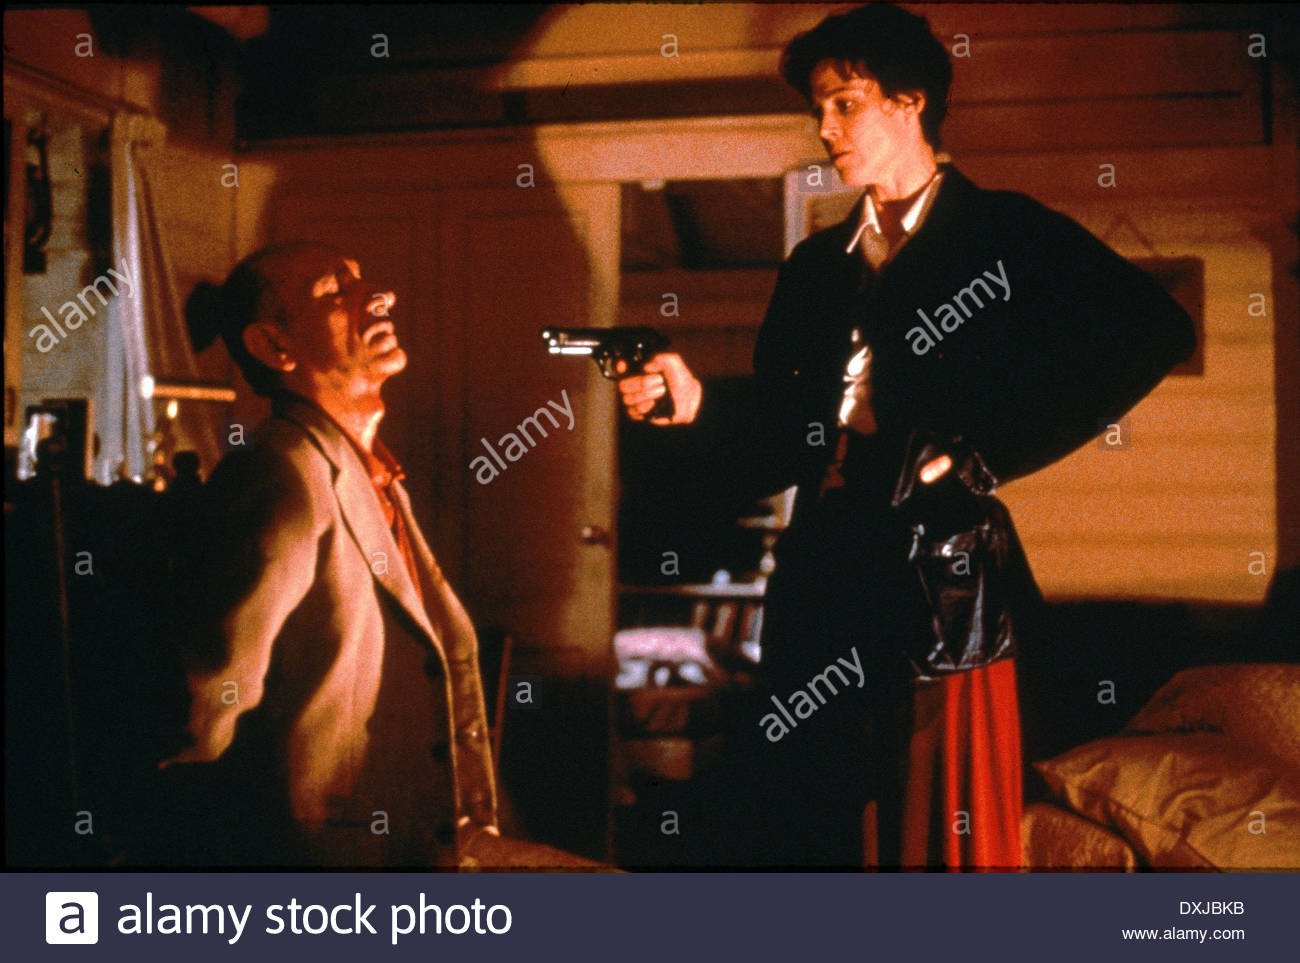 DEATH AND THE MAIDEN (US/UK/FR 1994) BEN KINGSLEY, SIGOURNEY - Stock Image